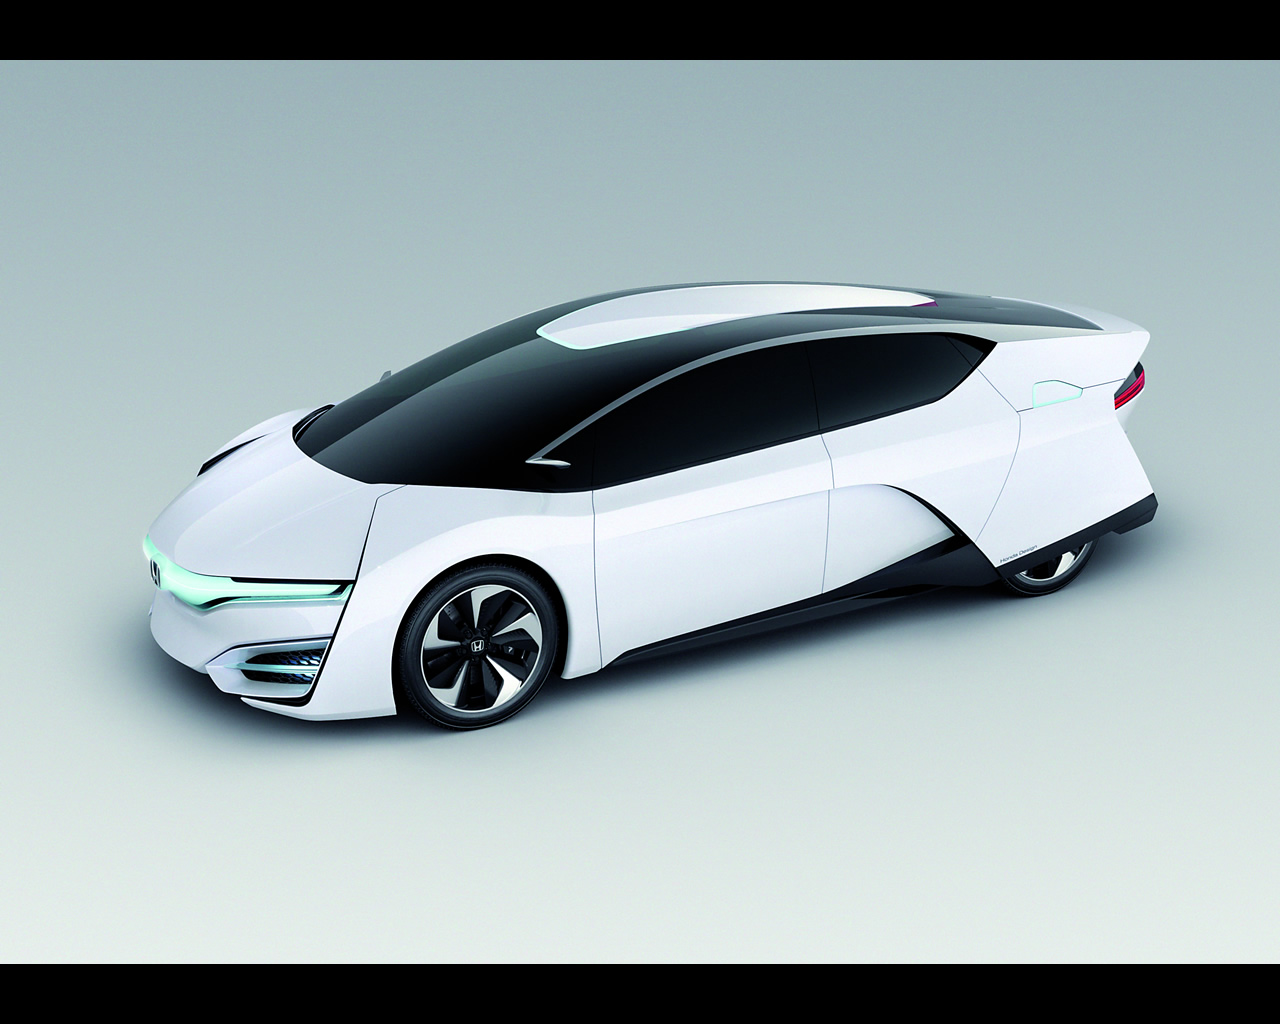 Honda Fcv Hydrogen Fuel Cell Vehicle Design Study For 2015 Fuelcell Flow Diagram Click On The Image To Enlarge Electric